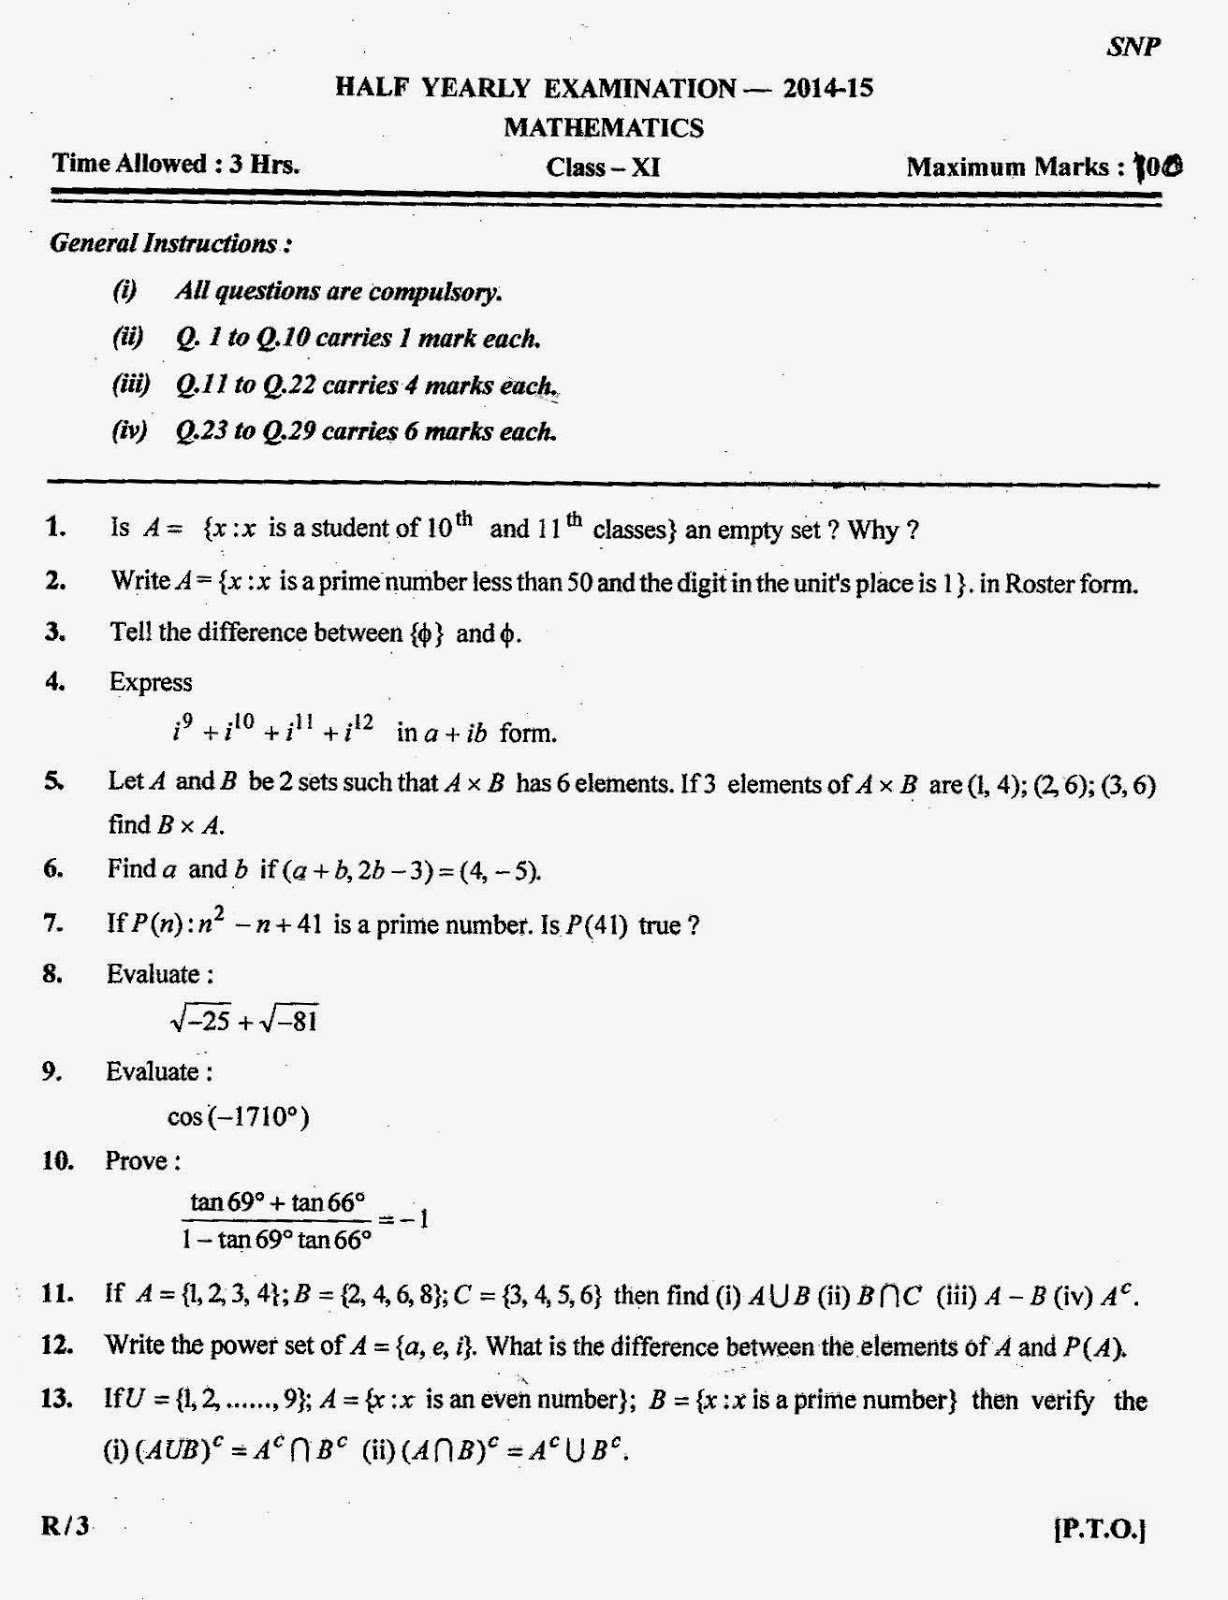 Year 11 General Maths Half Yearly Exam Papers